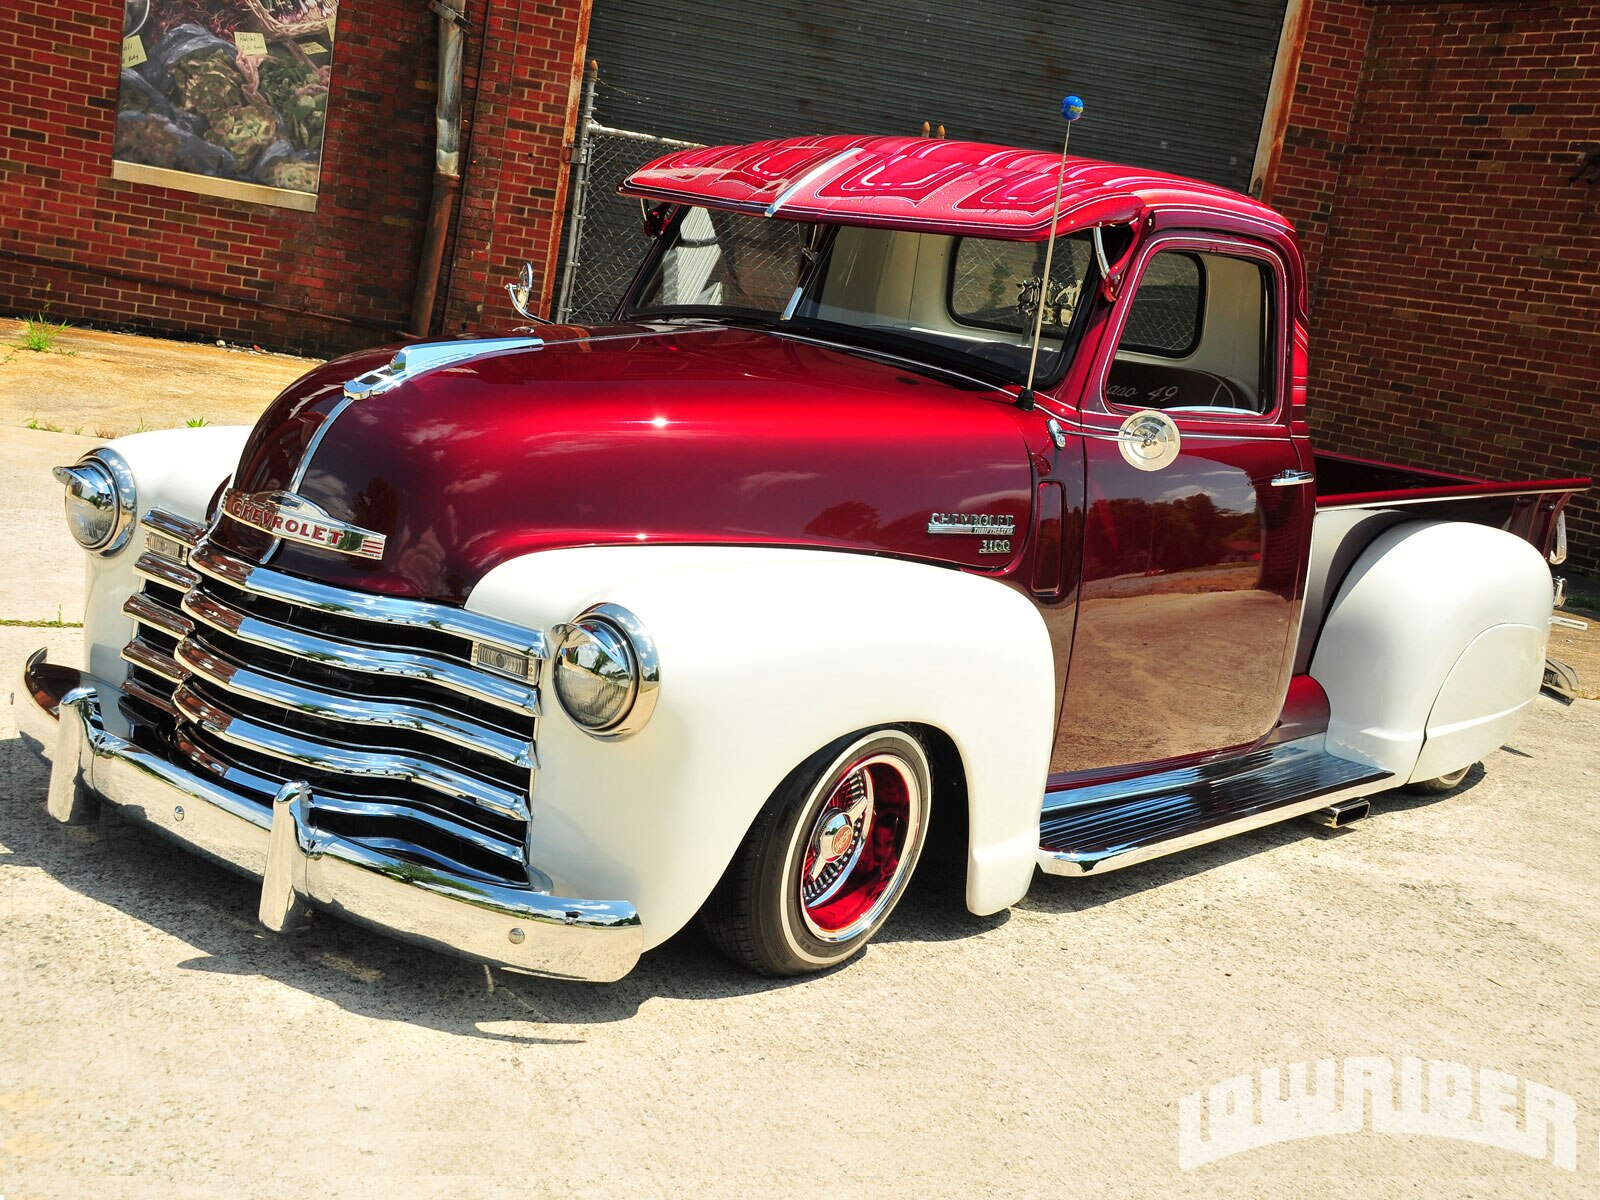 1211-lrmp-01-o-1949-chevrolet-3100-truck-driver-side-front-view1